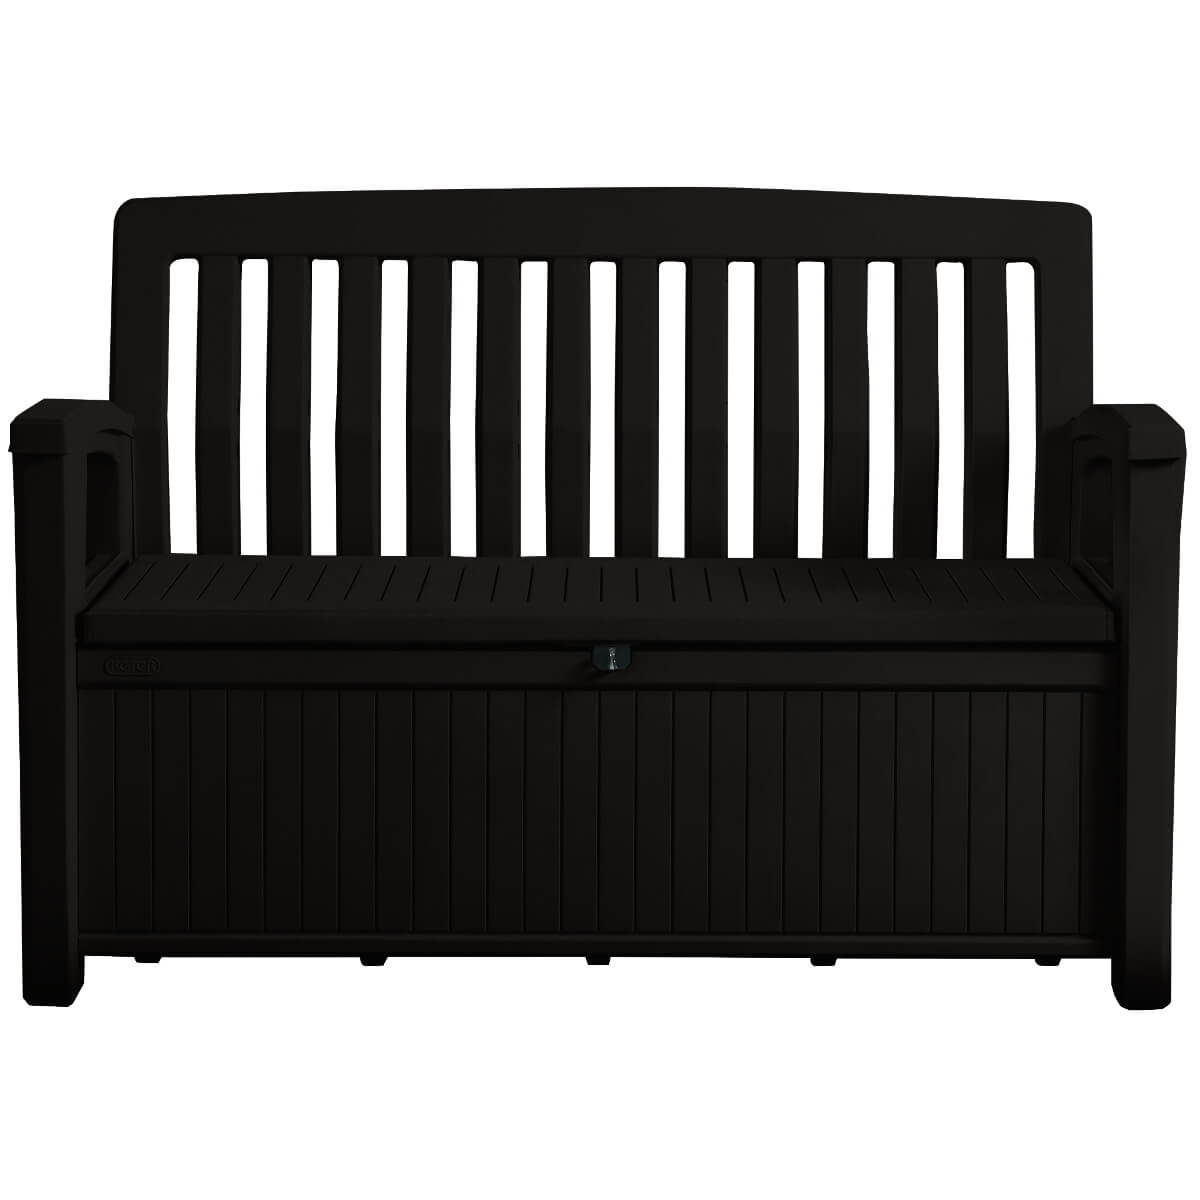 Скамья-сундук Keter Patio Bench